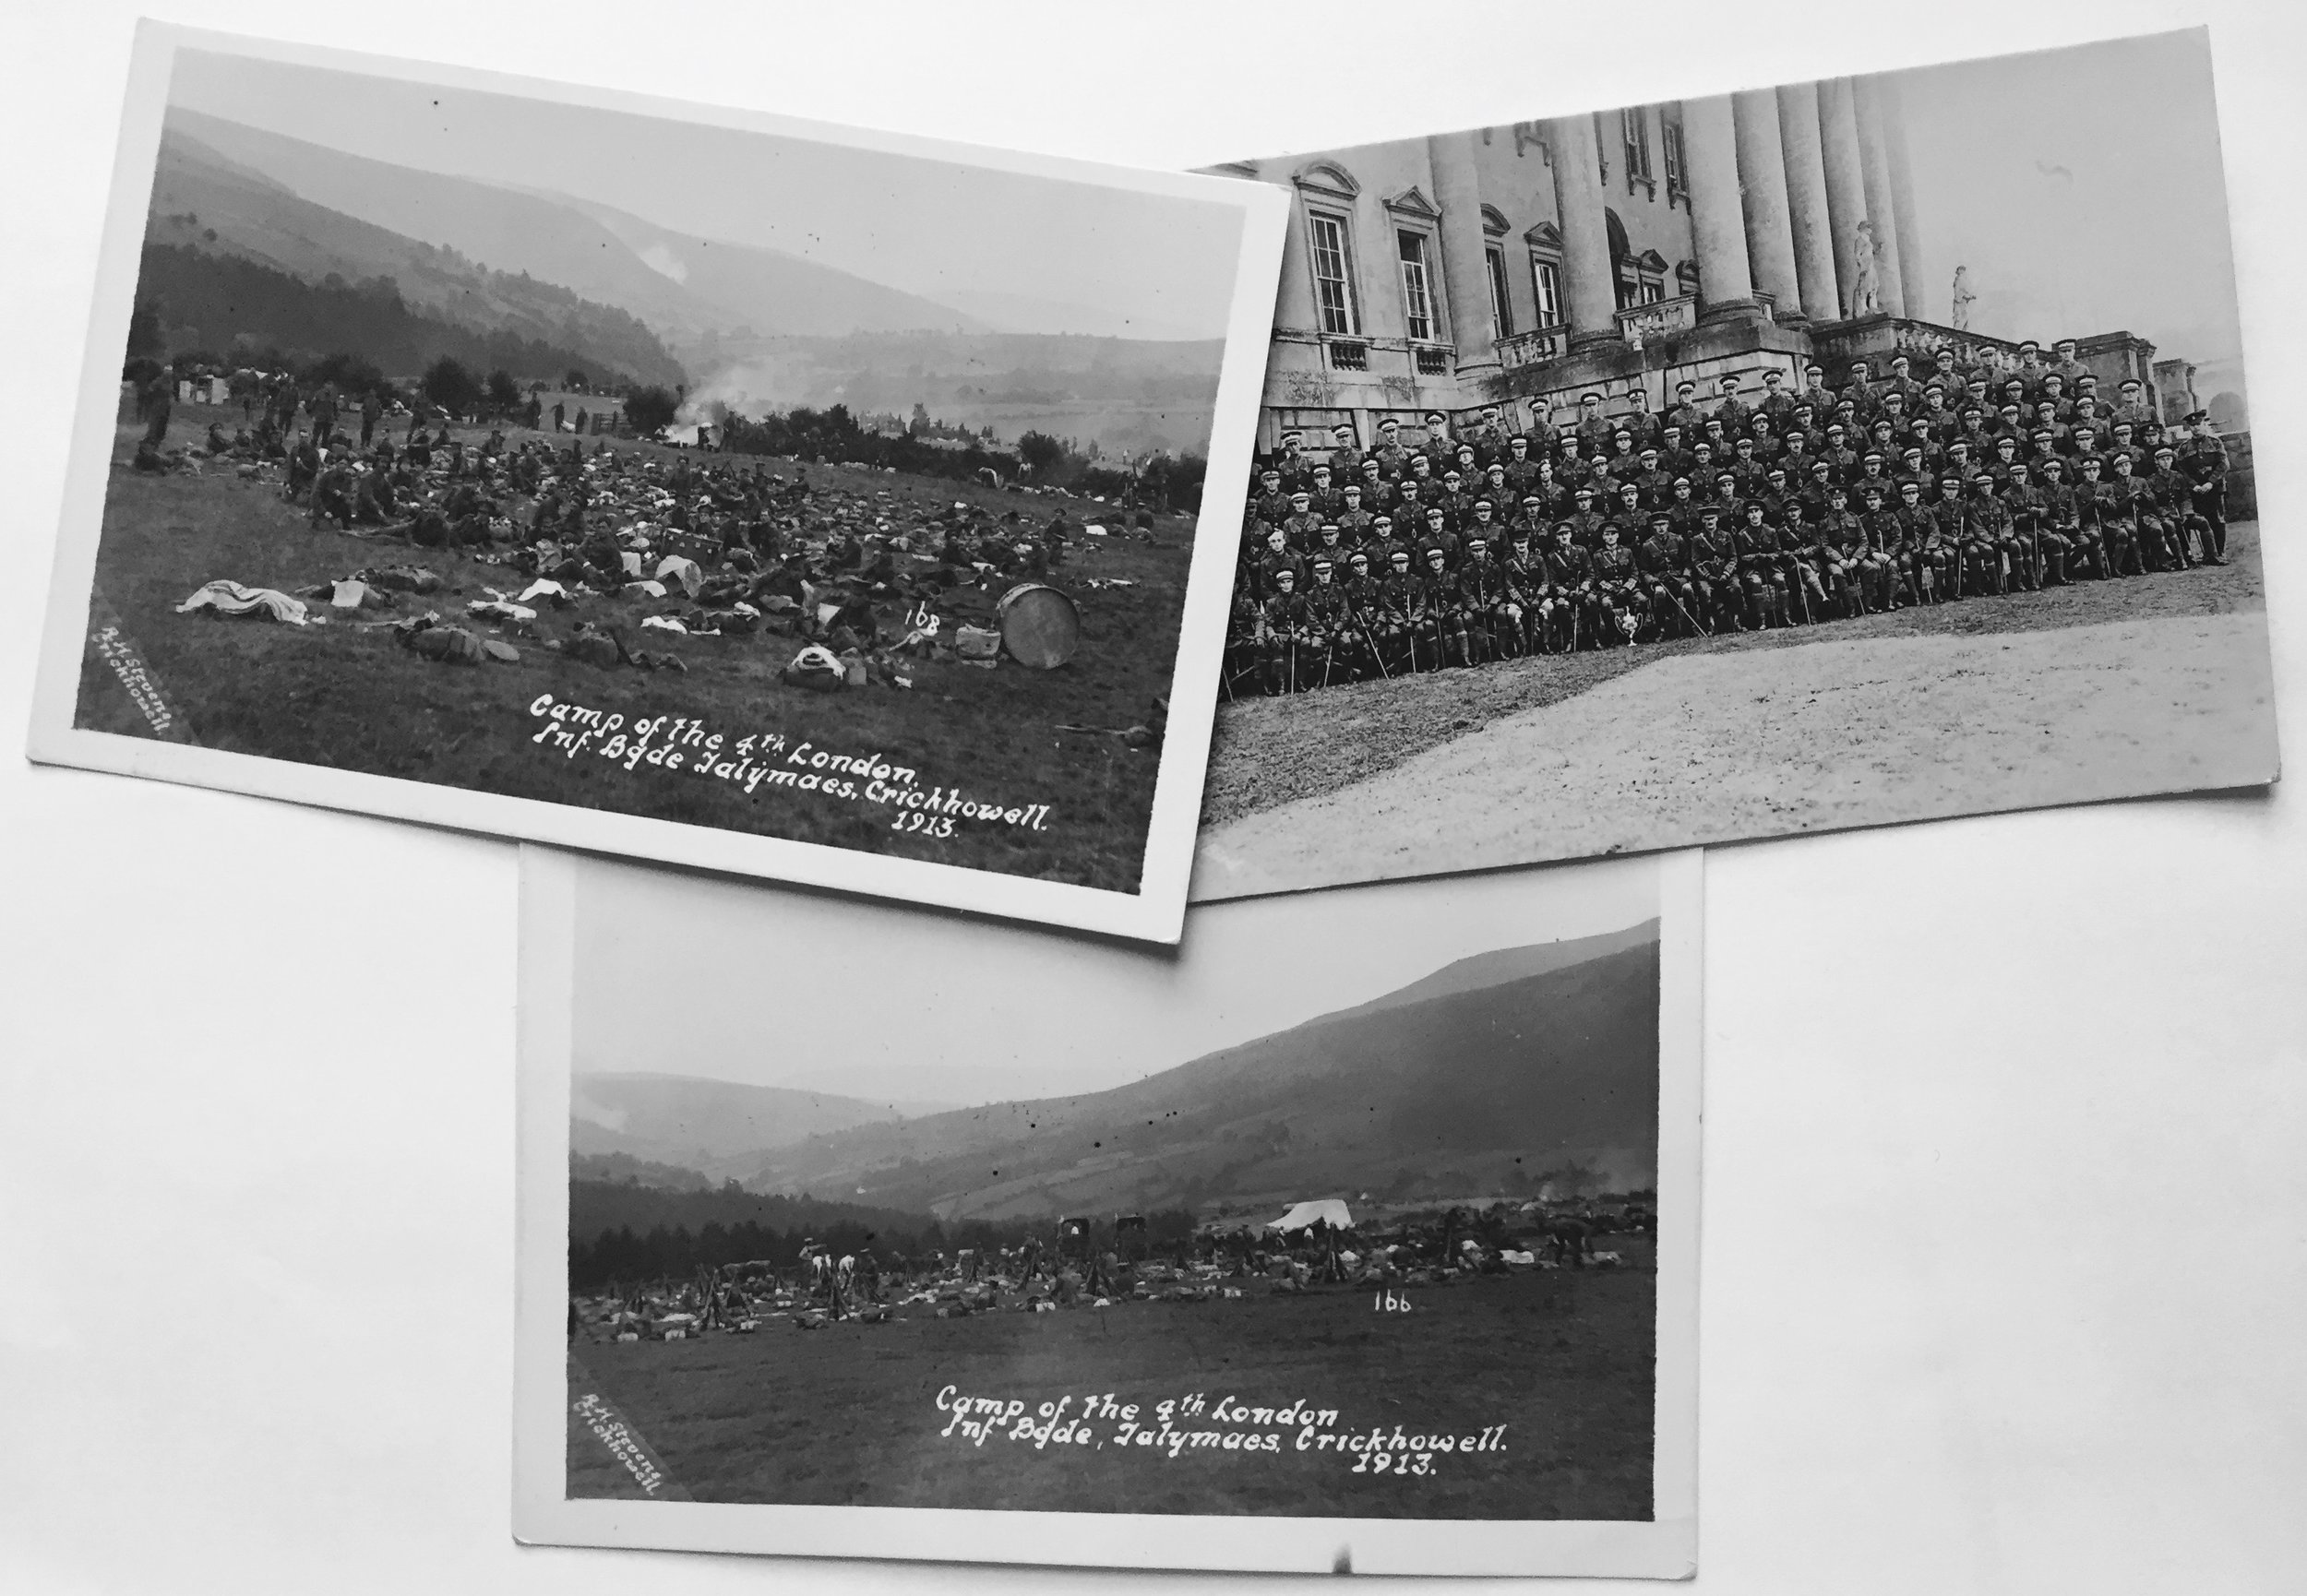 Camp of the 4th London Infantry Brigade, Crickhowell 1913.